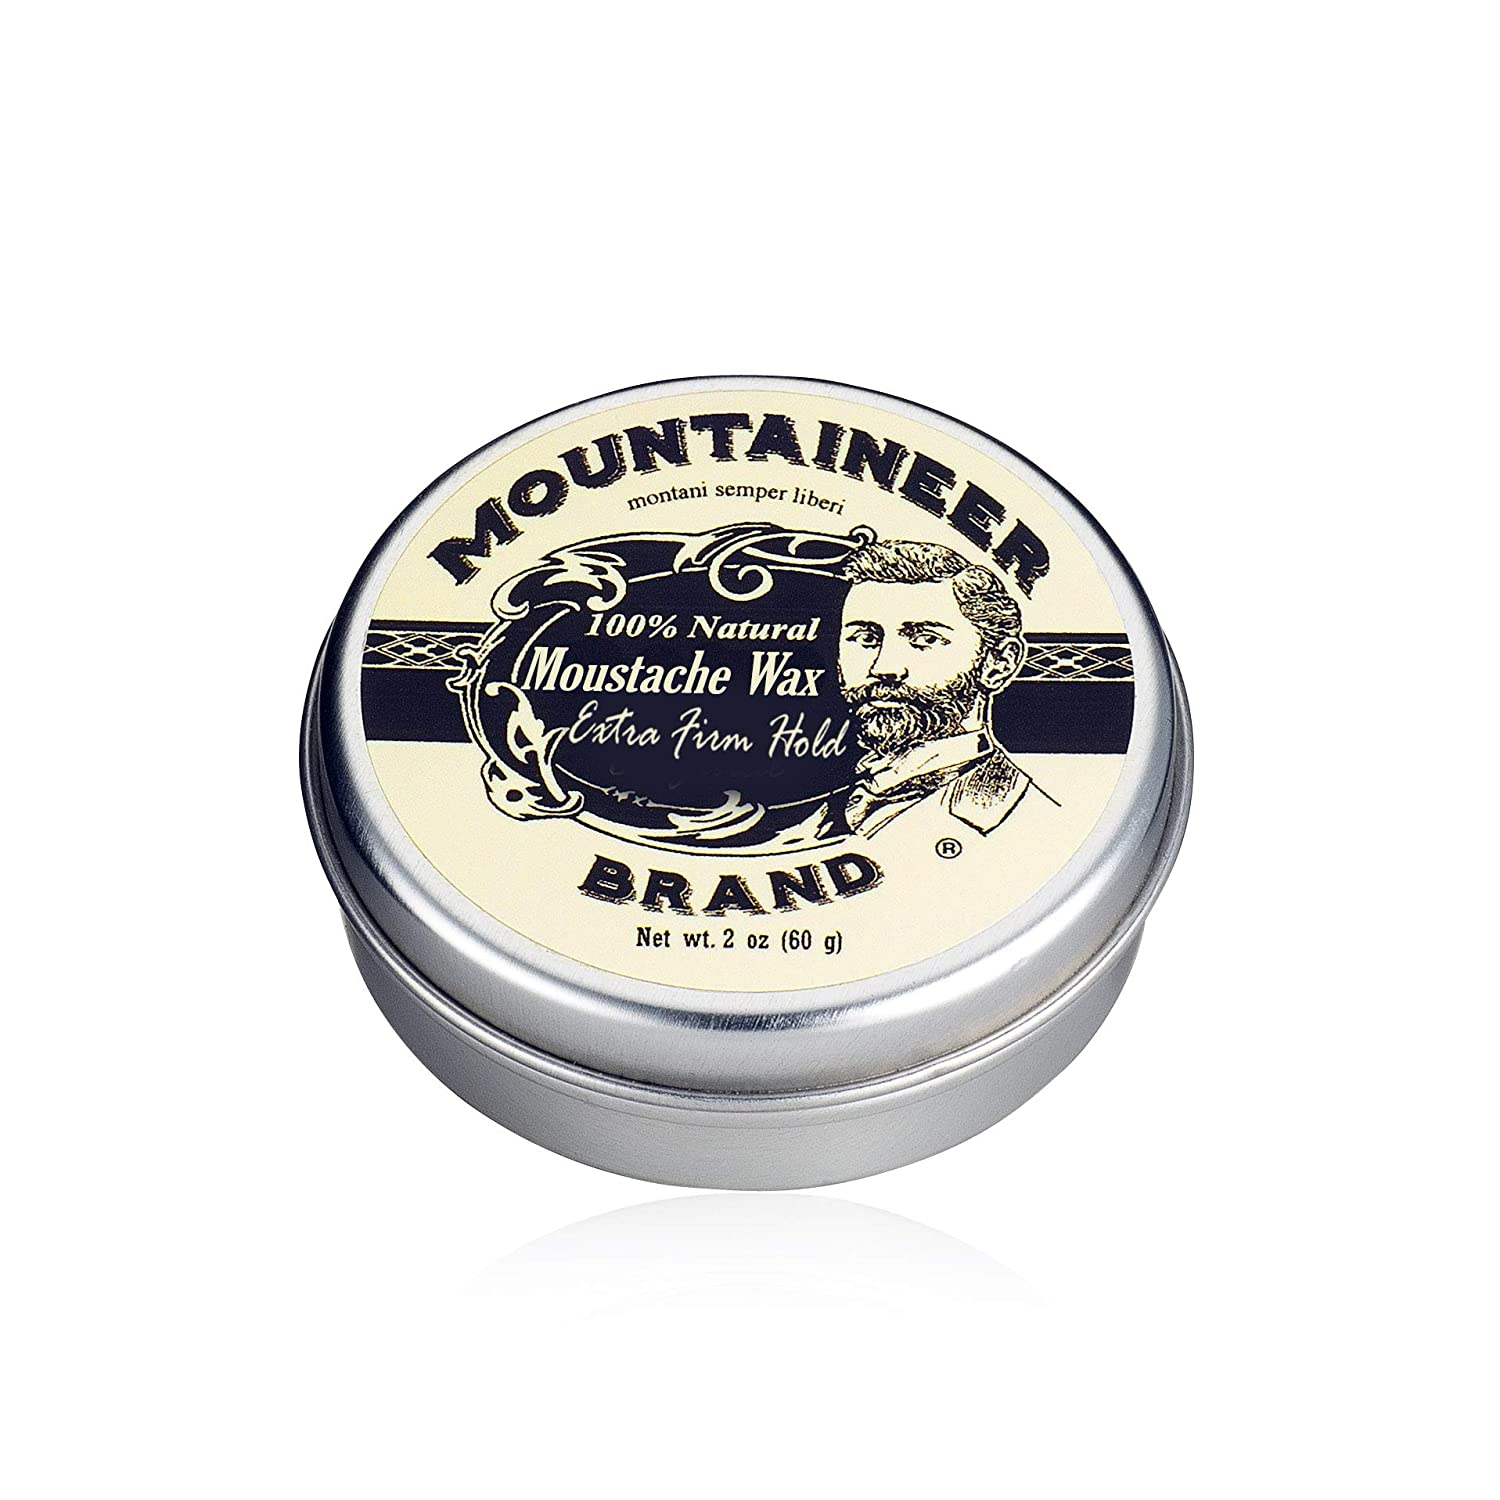 Mustache Wax by Mountaineer Brand - All-Natural, No Residue, Clear and Easy to Use, 2 oz Tin (WV Citrus & Spice)